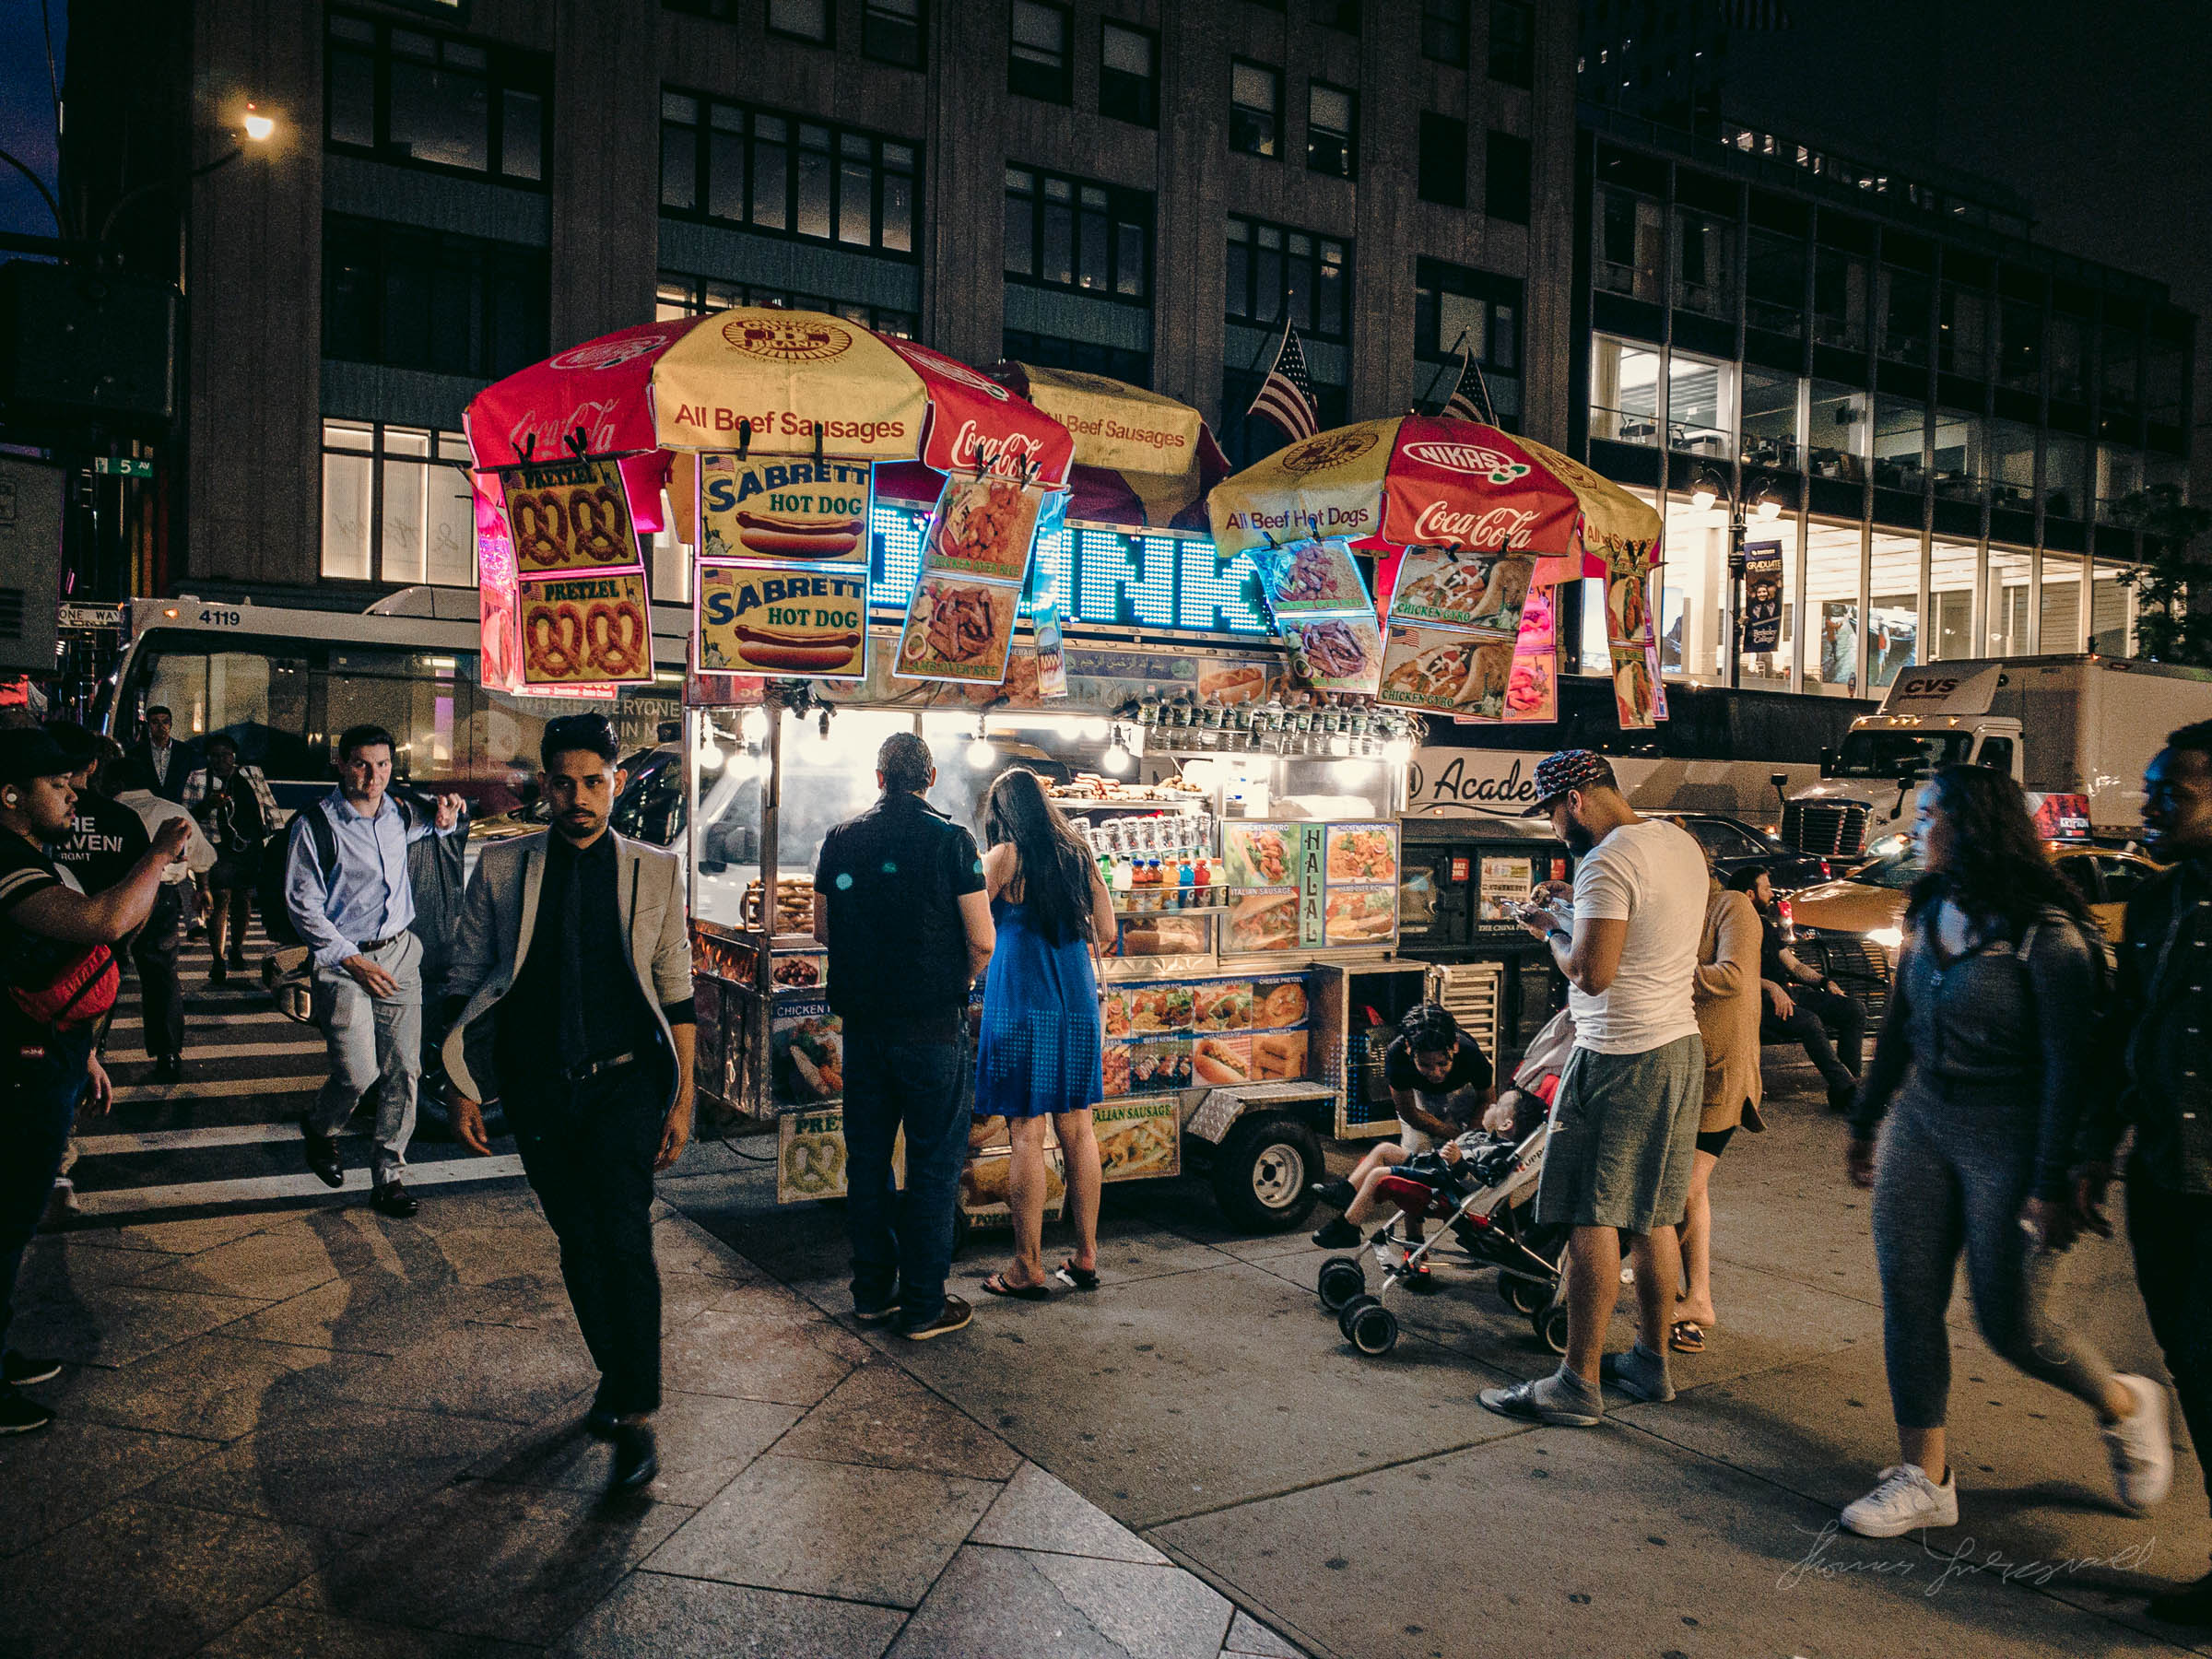 Hot Dog vendor on 5th Avenue at Night in NYC